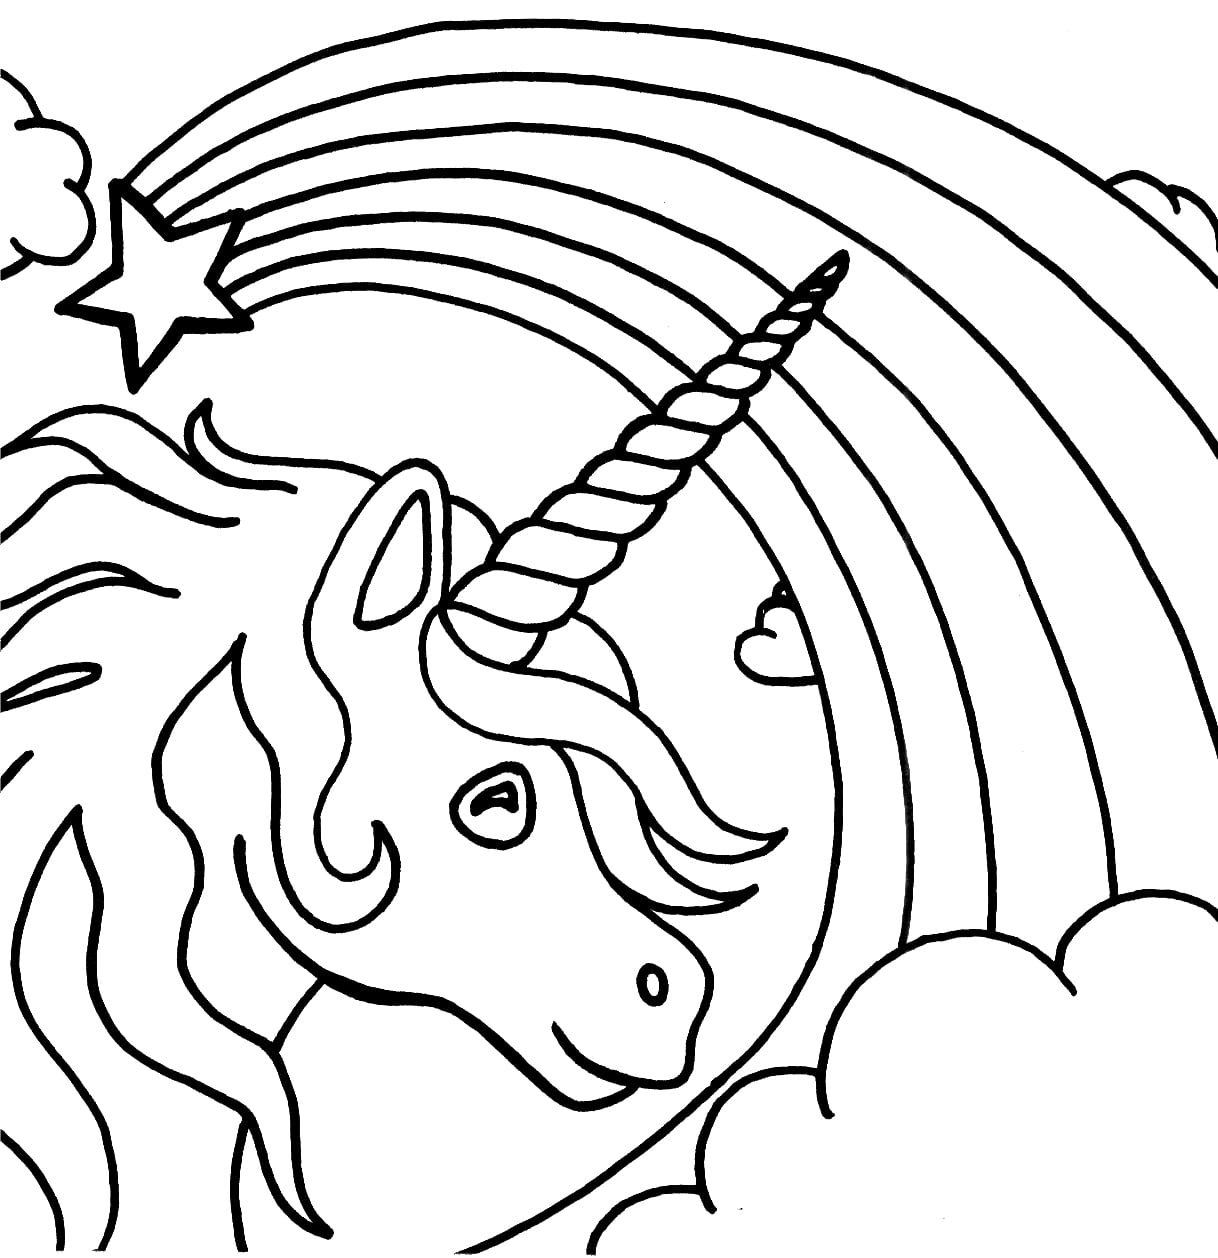 Latest Free Kids Colouring Pages Noted Color Pictures For In